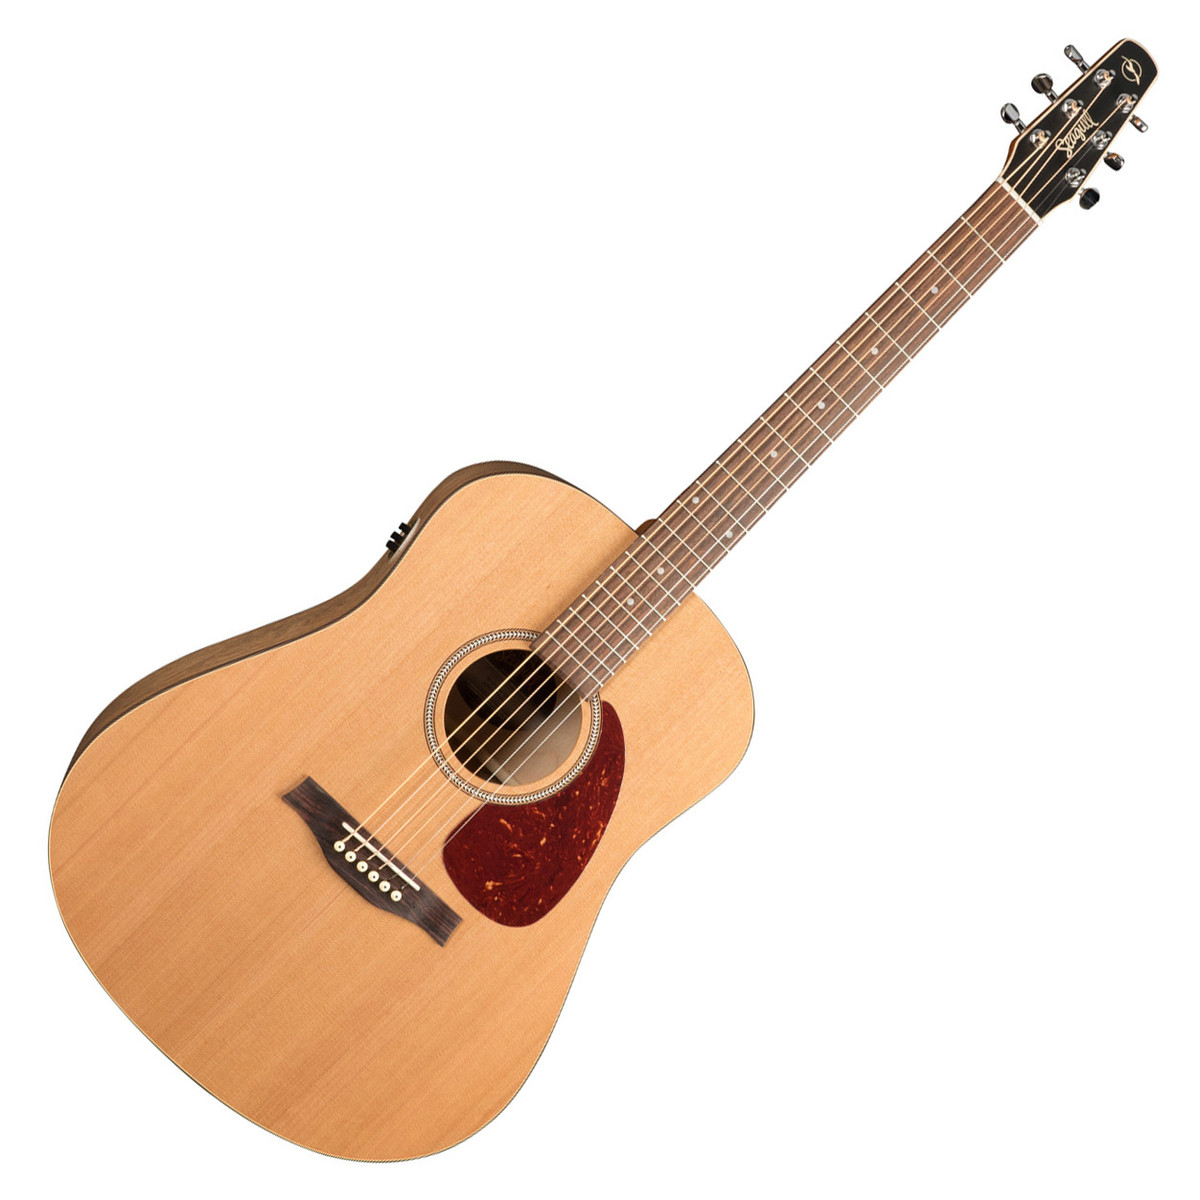 seagull s6 original qi electro acoustic guitar natural w tric case at gear4music. Black Bedroom Furniture Sets. Home Design Ideas